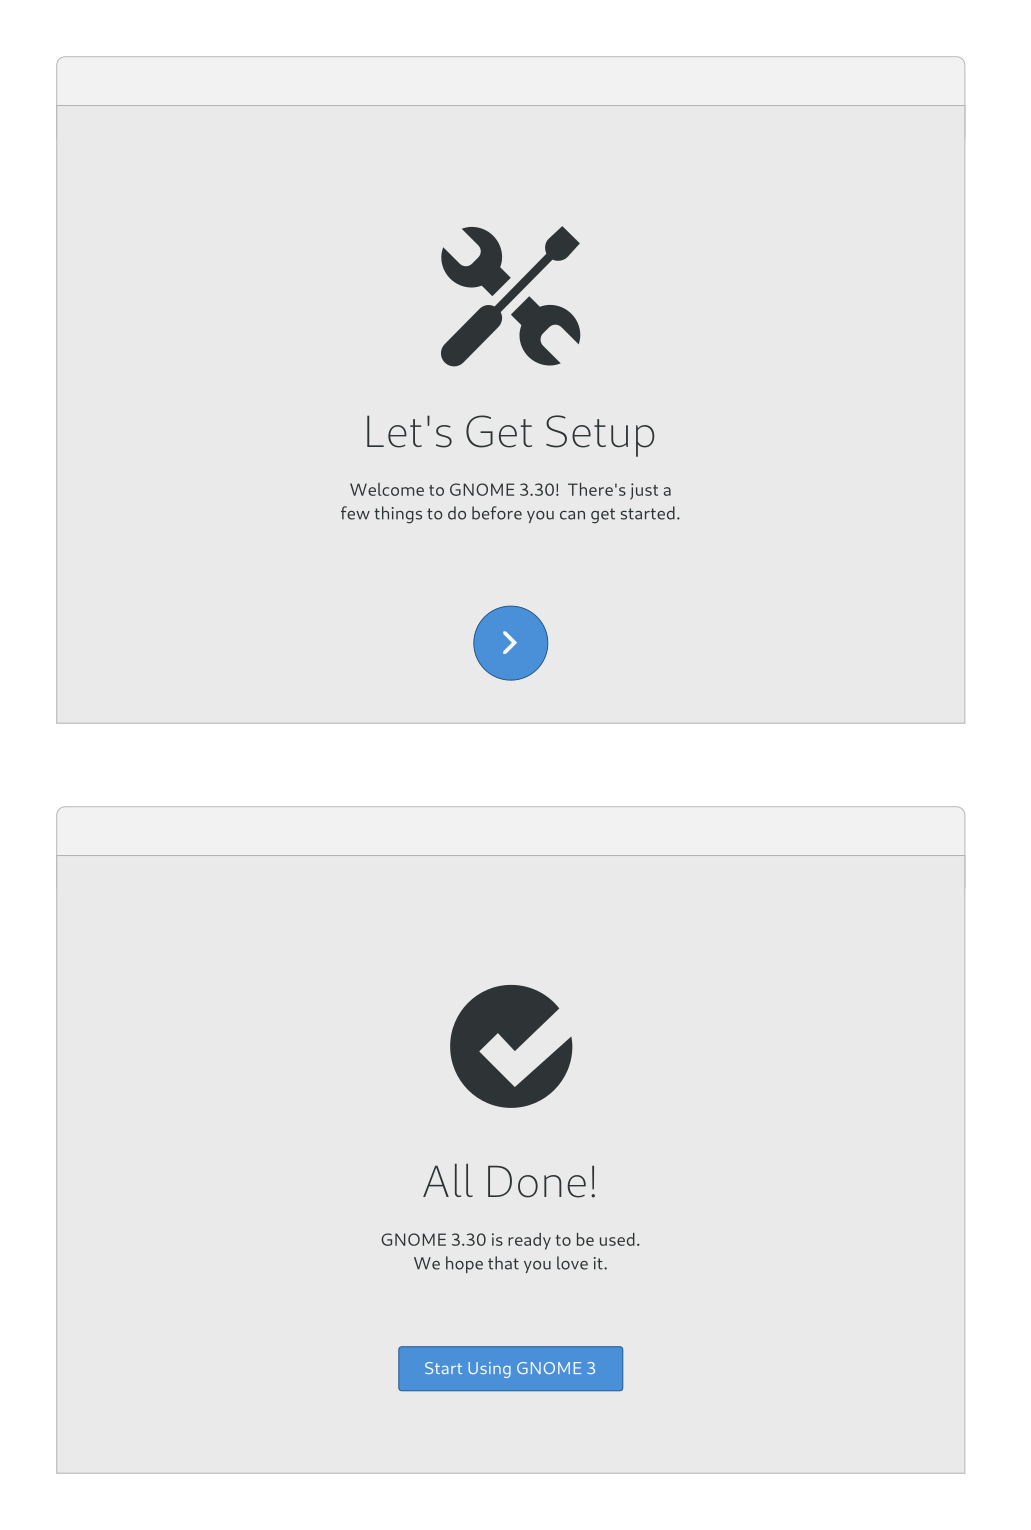 initial-setup/welcome-and-final-page-aday.png